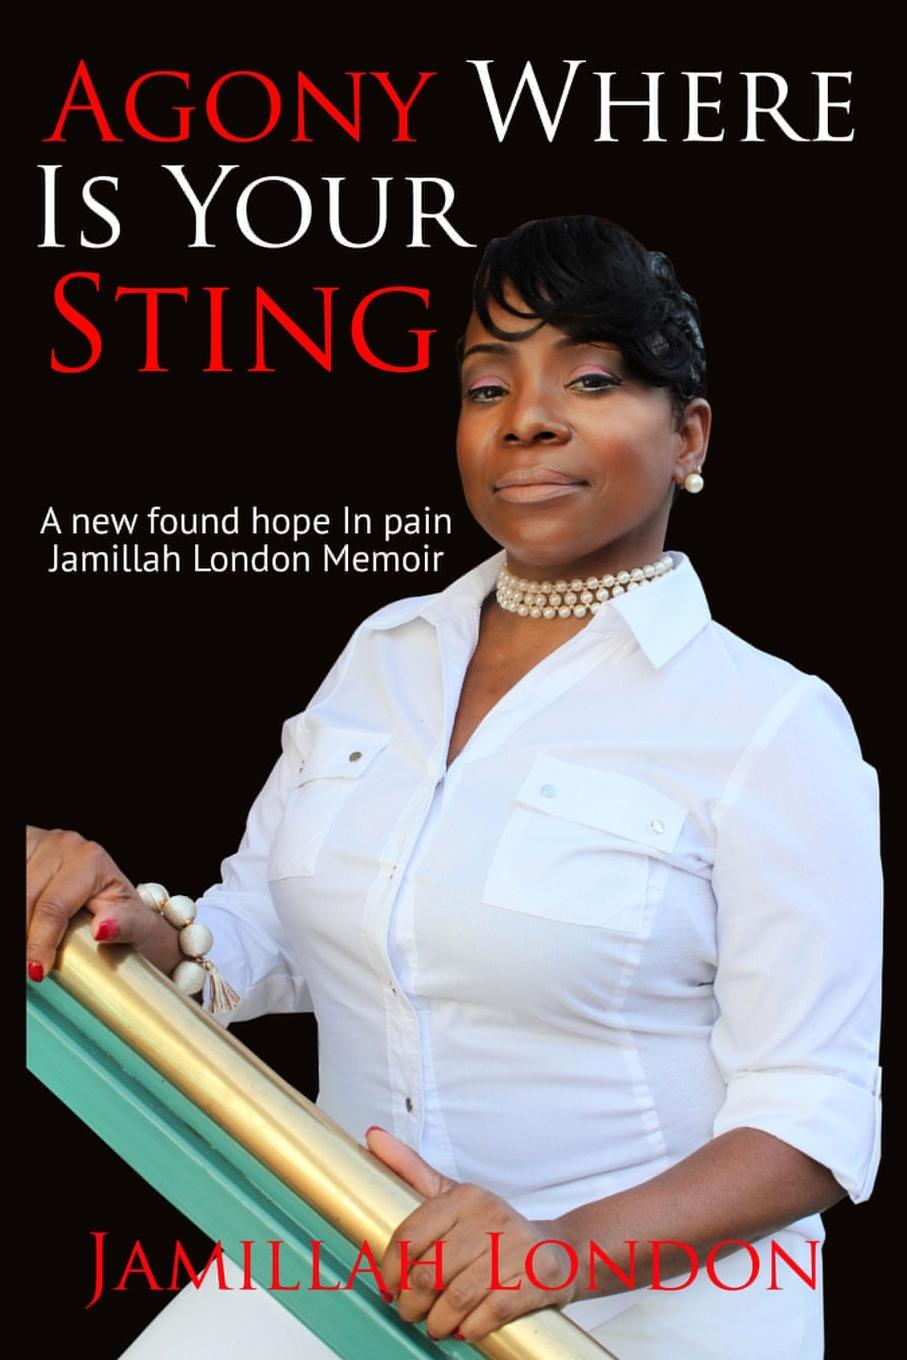 Jamillah London Agony Where is Your Sting. A new found hope in pain leadership institute women with purpose finding life balance direction